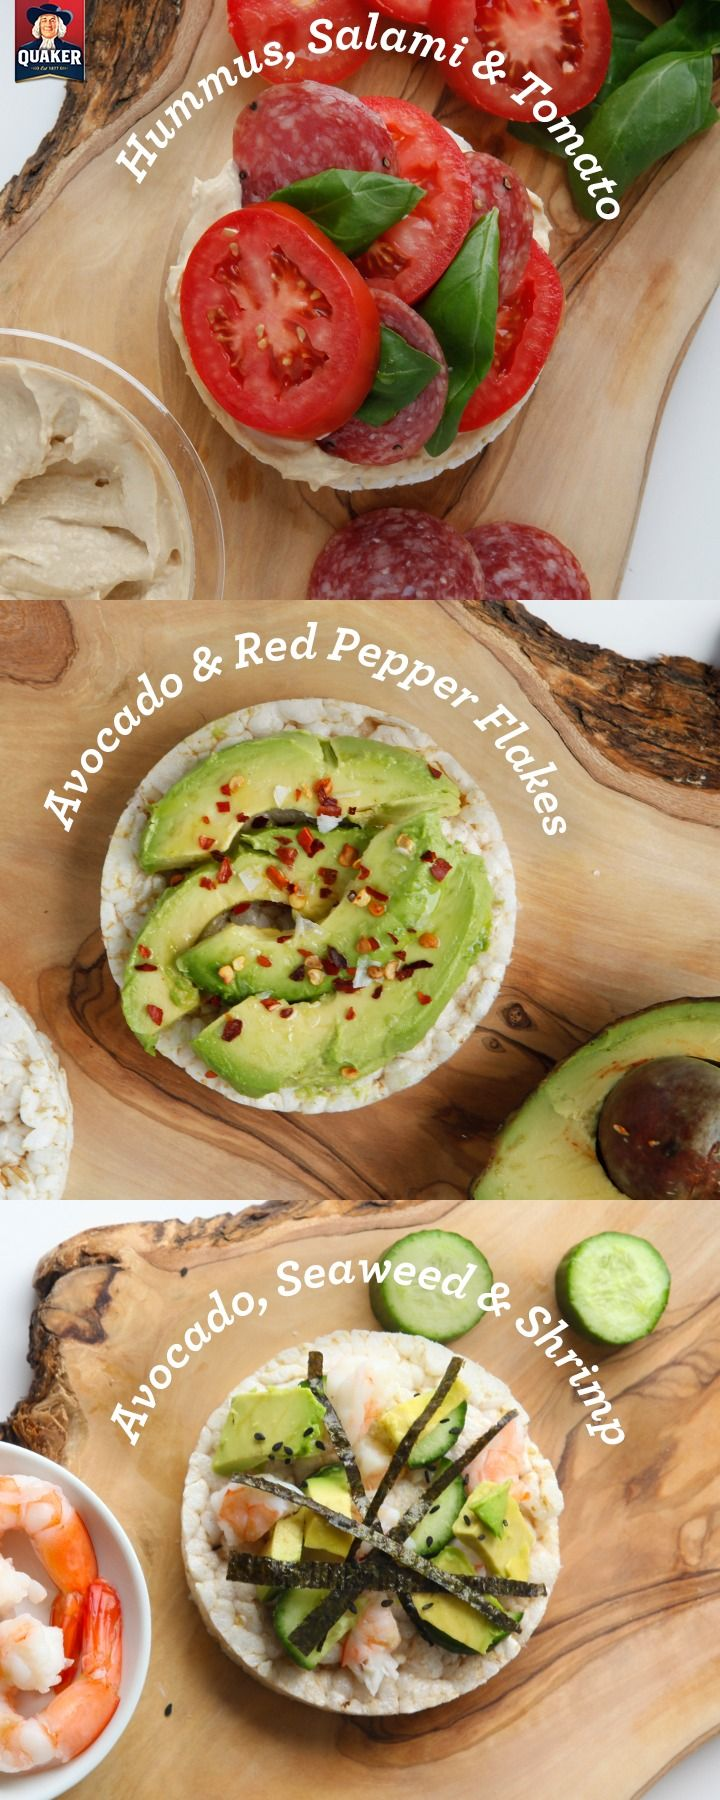 Quaker's® Gluten-Free Rice Cakes are the perfect vehicle for your favorite fruits, veggies or spreads. Top them with avocado and a sprinkle of crushed red pepper, if you're feeling a little spicy. No time to make sushi? Throw some seaweed, avocado, cucumber and shrimp on a Lightly Salted rice cake. When in doubt, hummus, salami, tomato, and a little basil always makes an irresistible snack time combo.